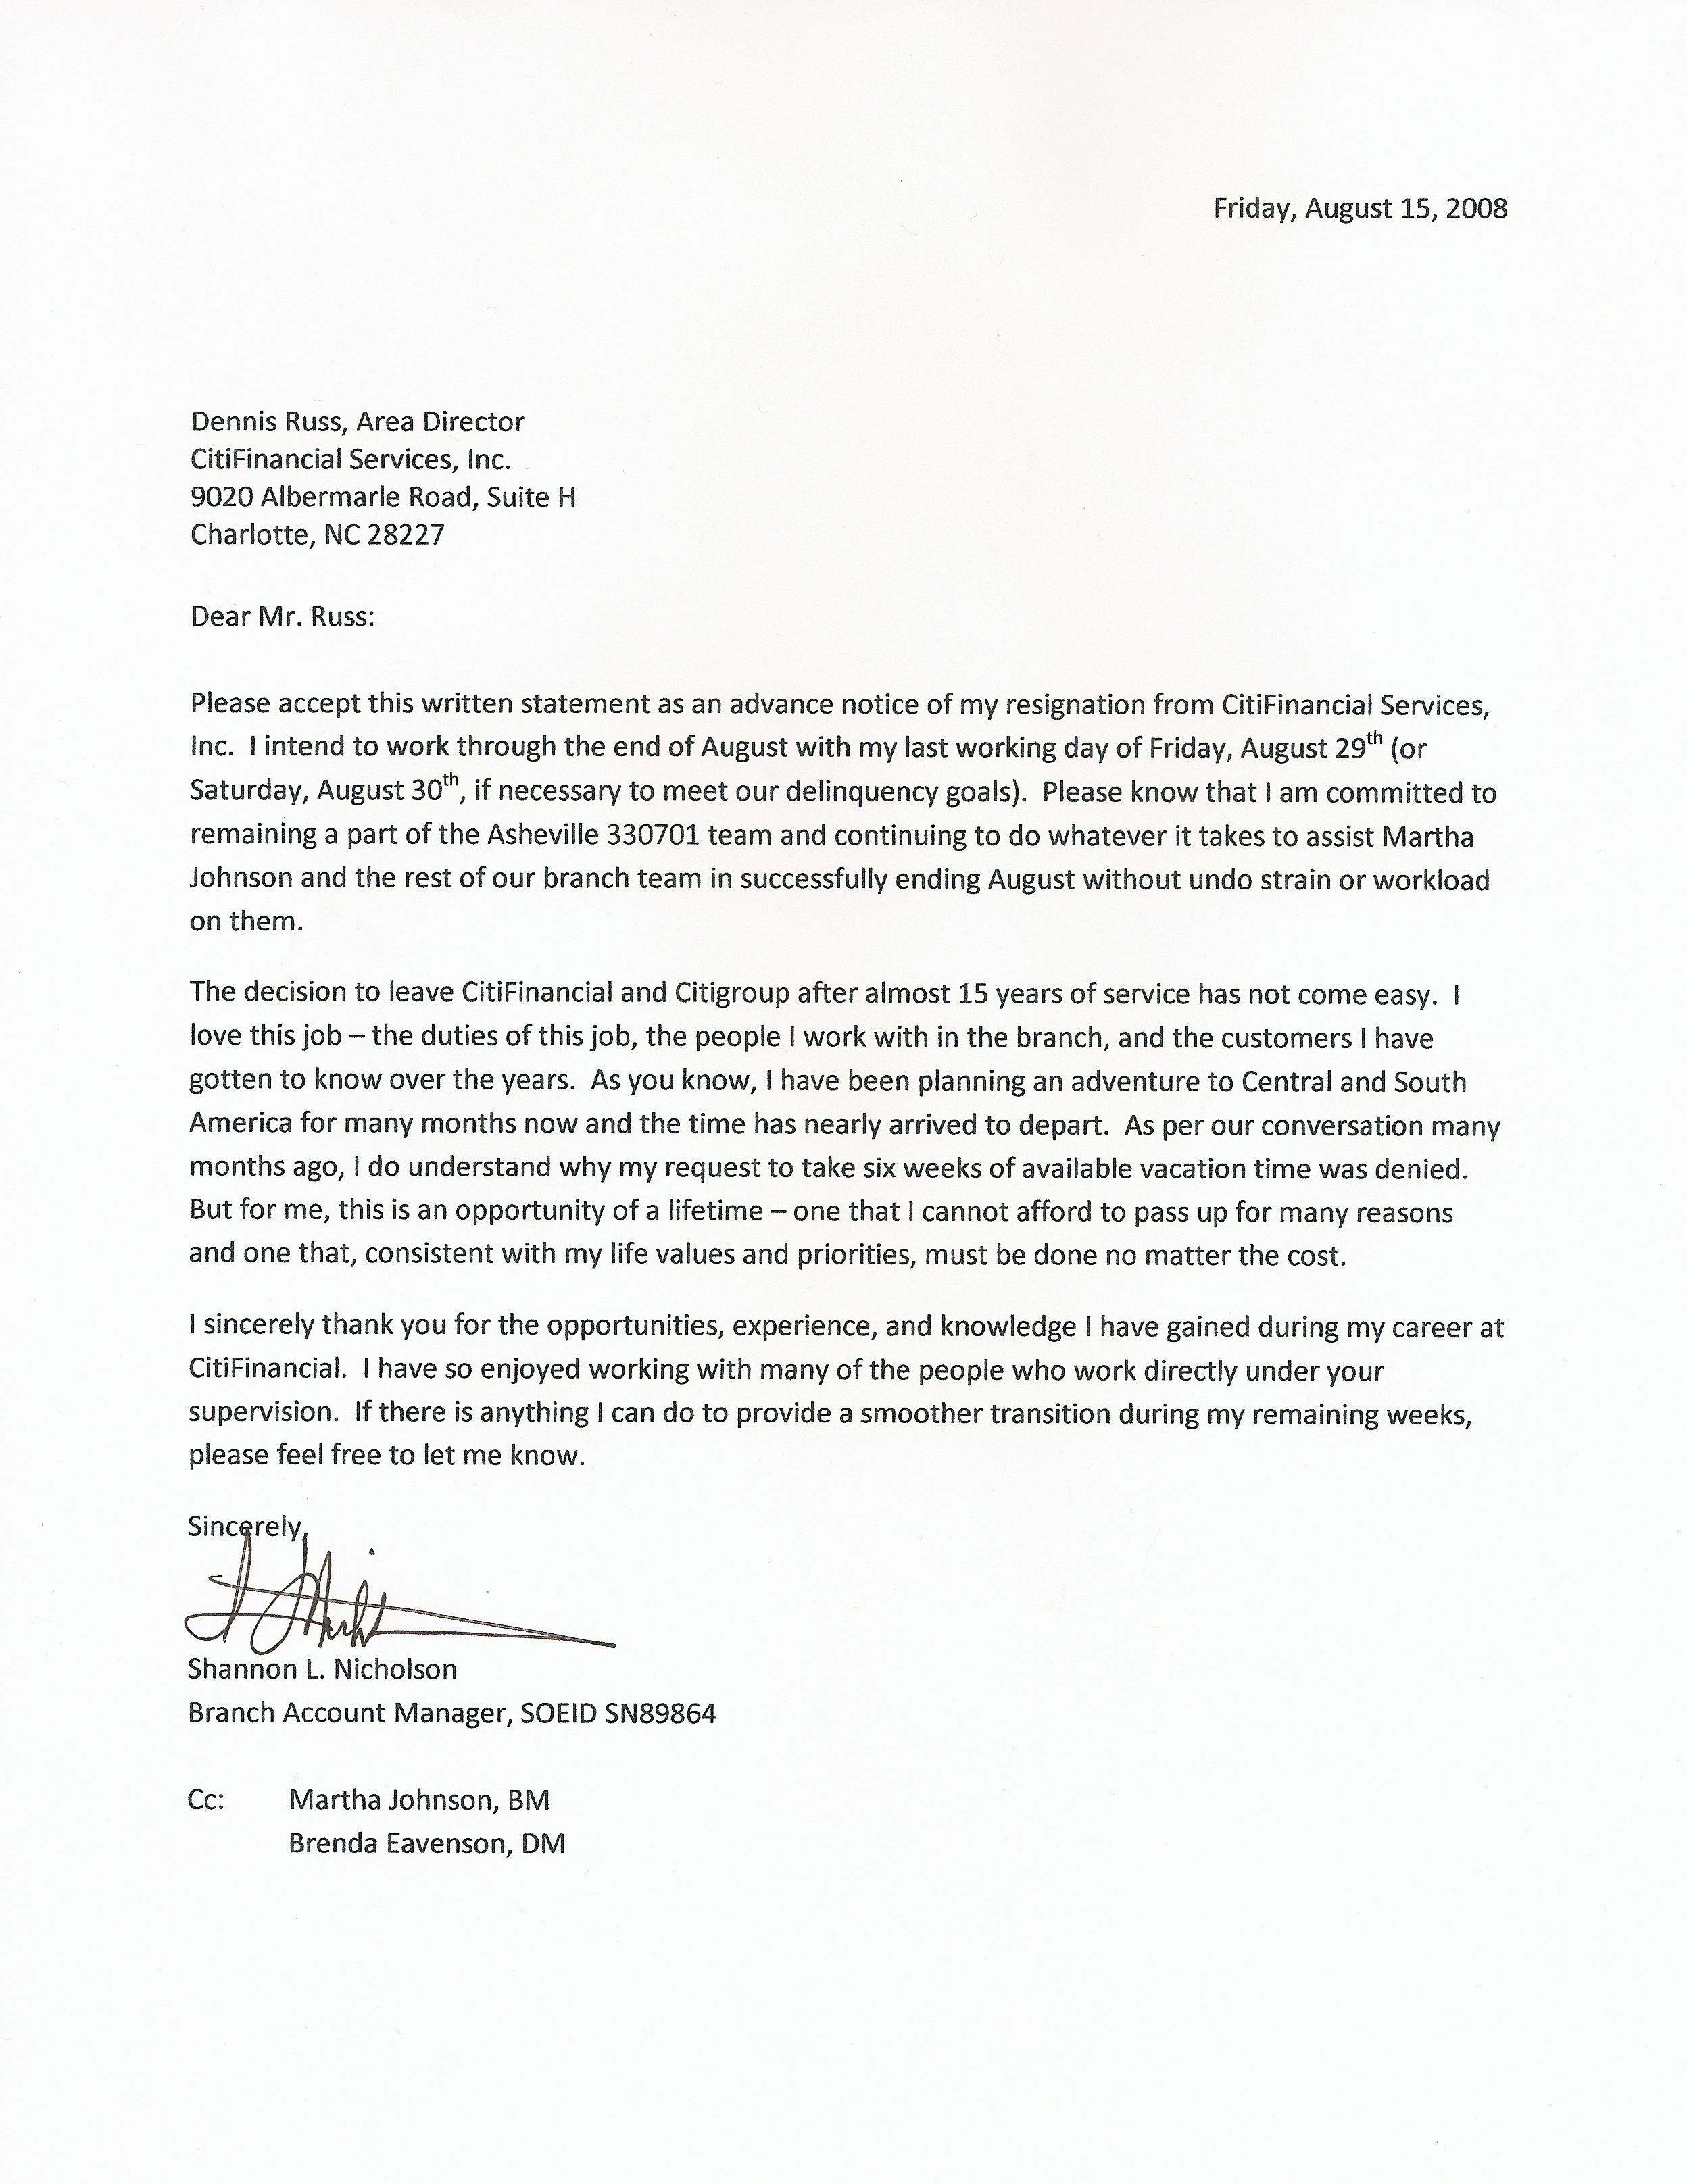 Resignation Letter Formal Letter Sample Letter And Email – Sample Resignation Letters